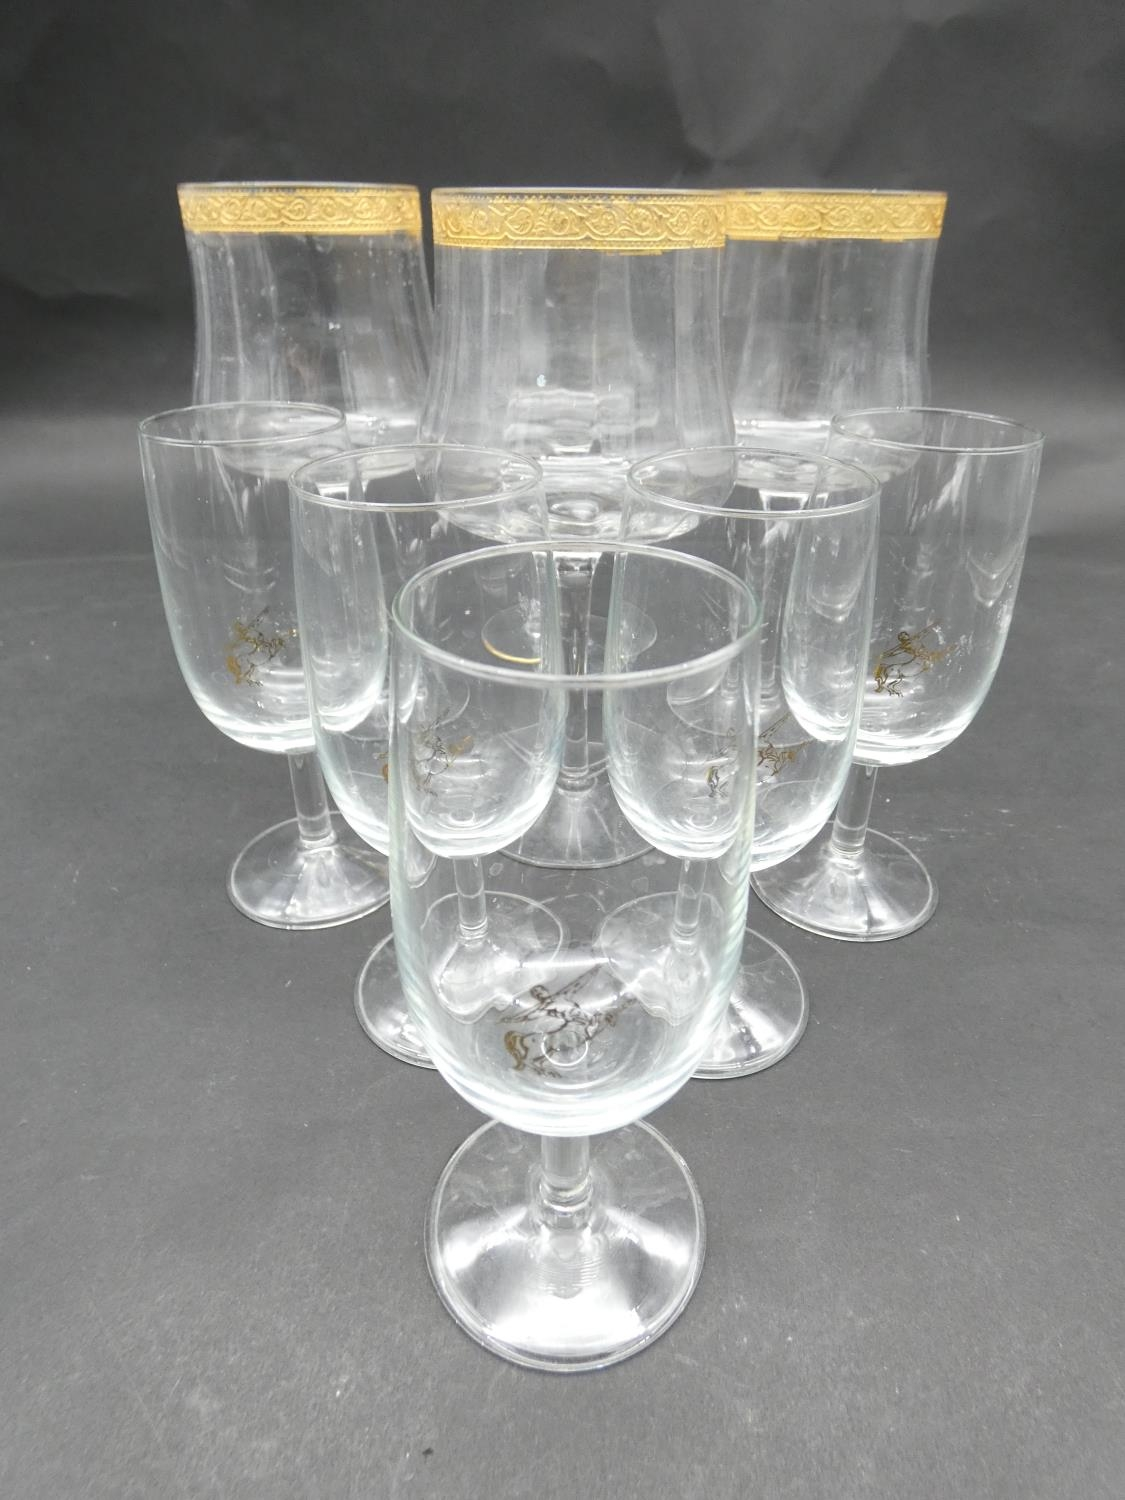 A collection of glasses. Including a set of five sherry glasses with gilded Orion symbols, along - Image 4 of 14